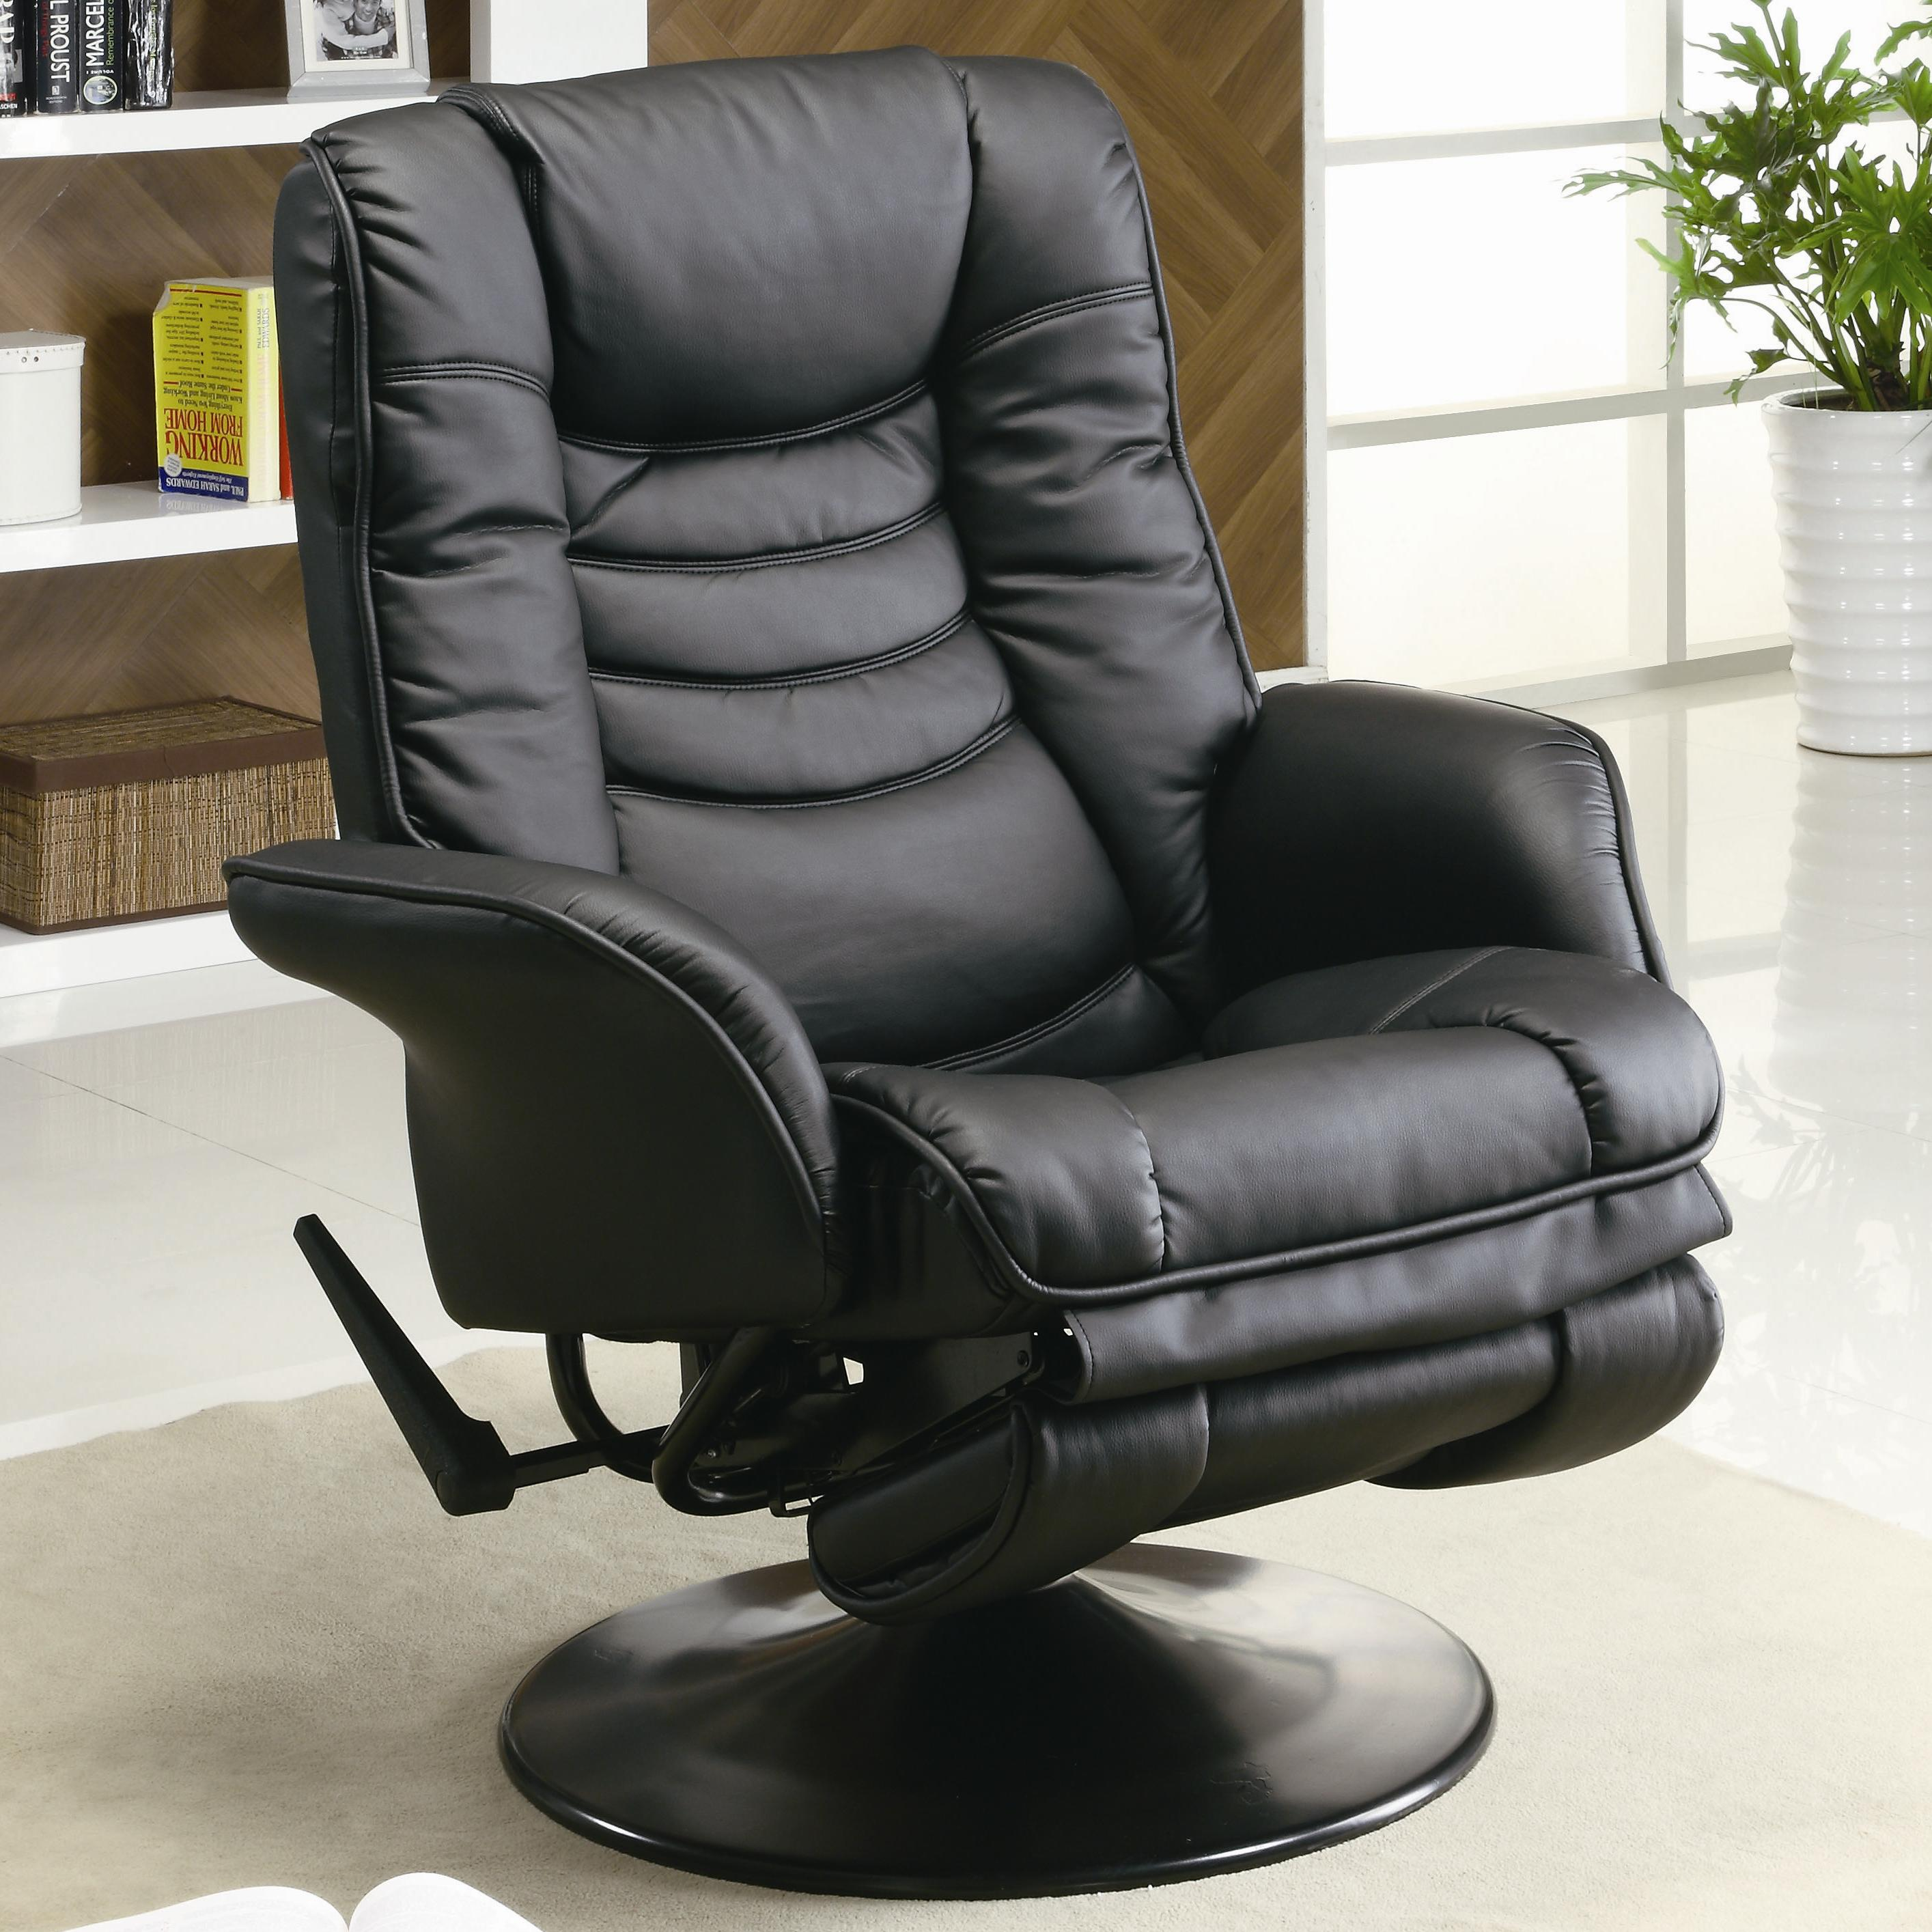 Coaster Recliners Swivel Recliner   Item Number: 600229